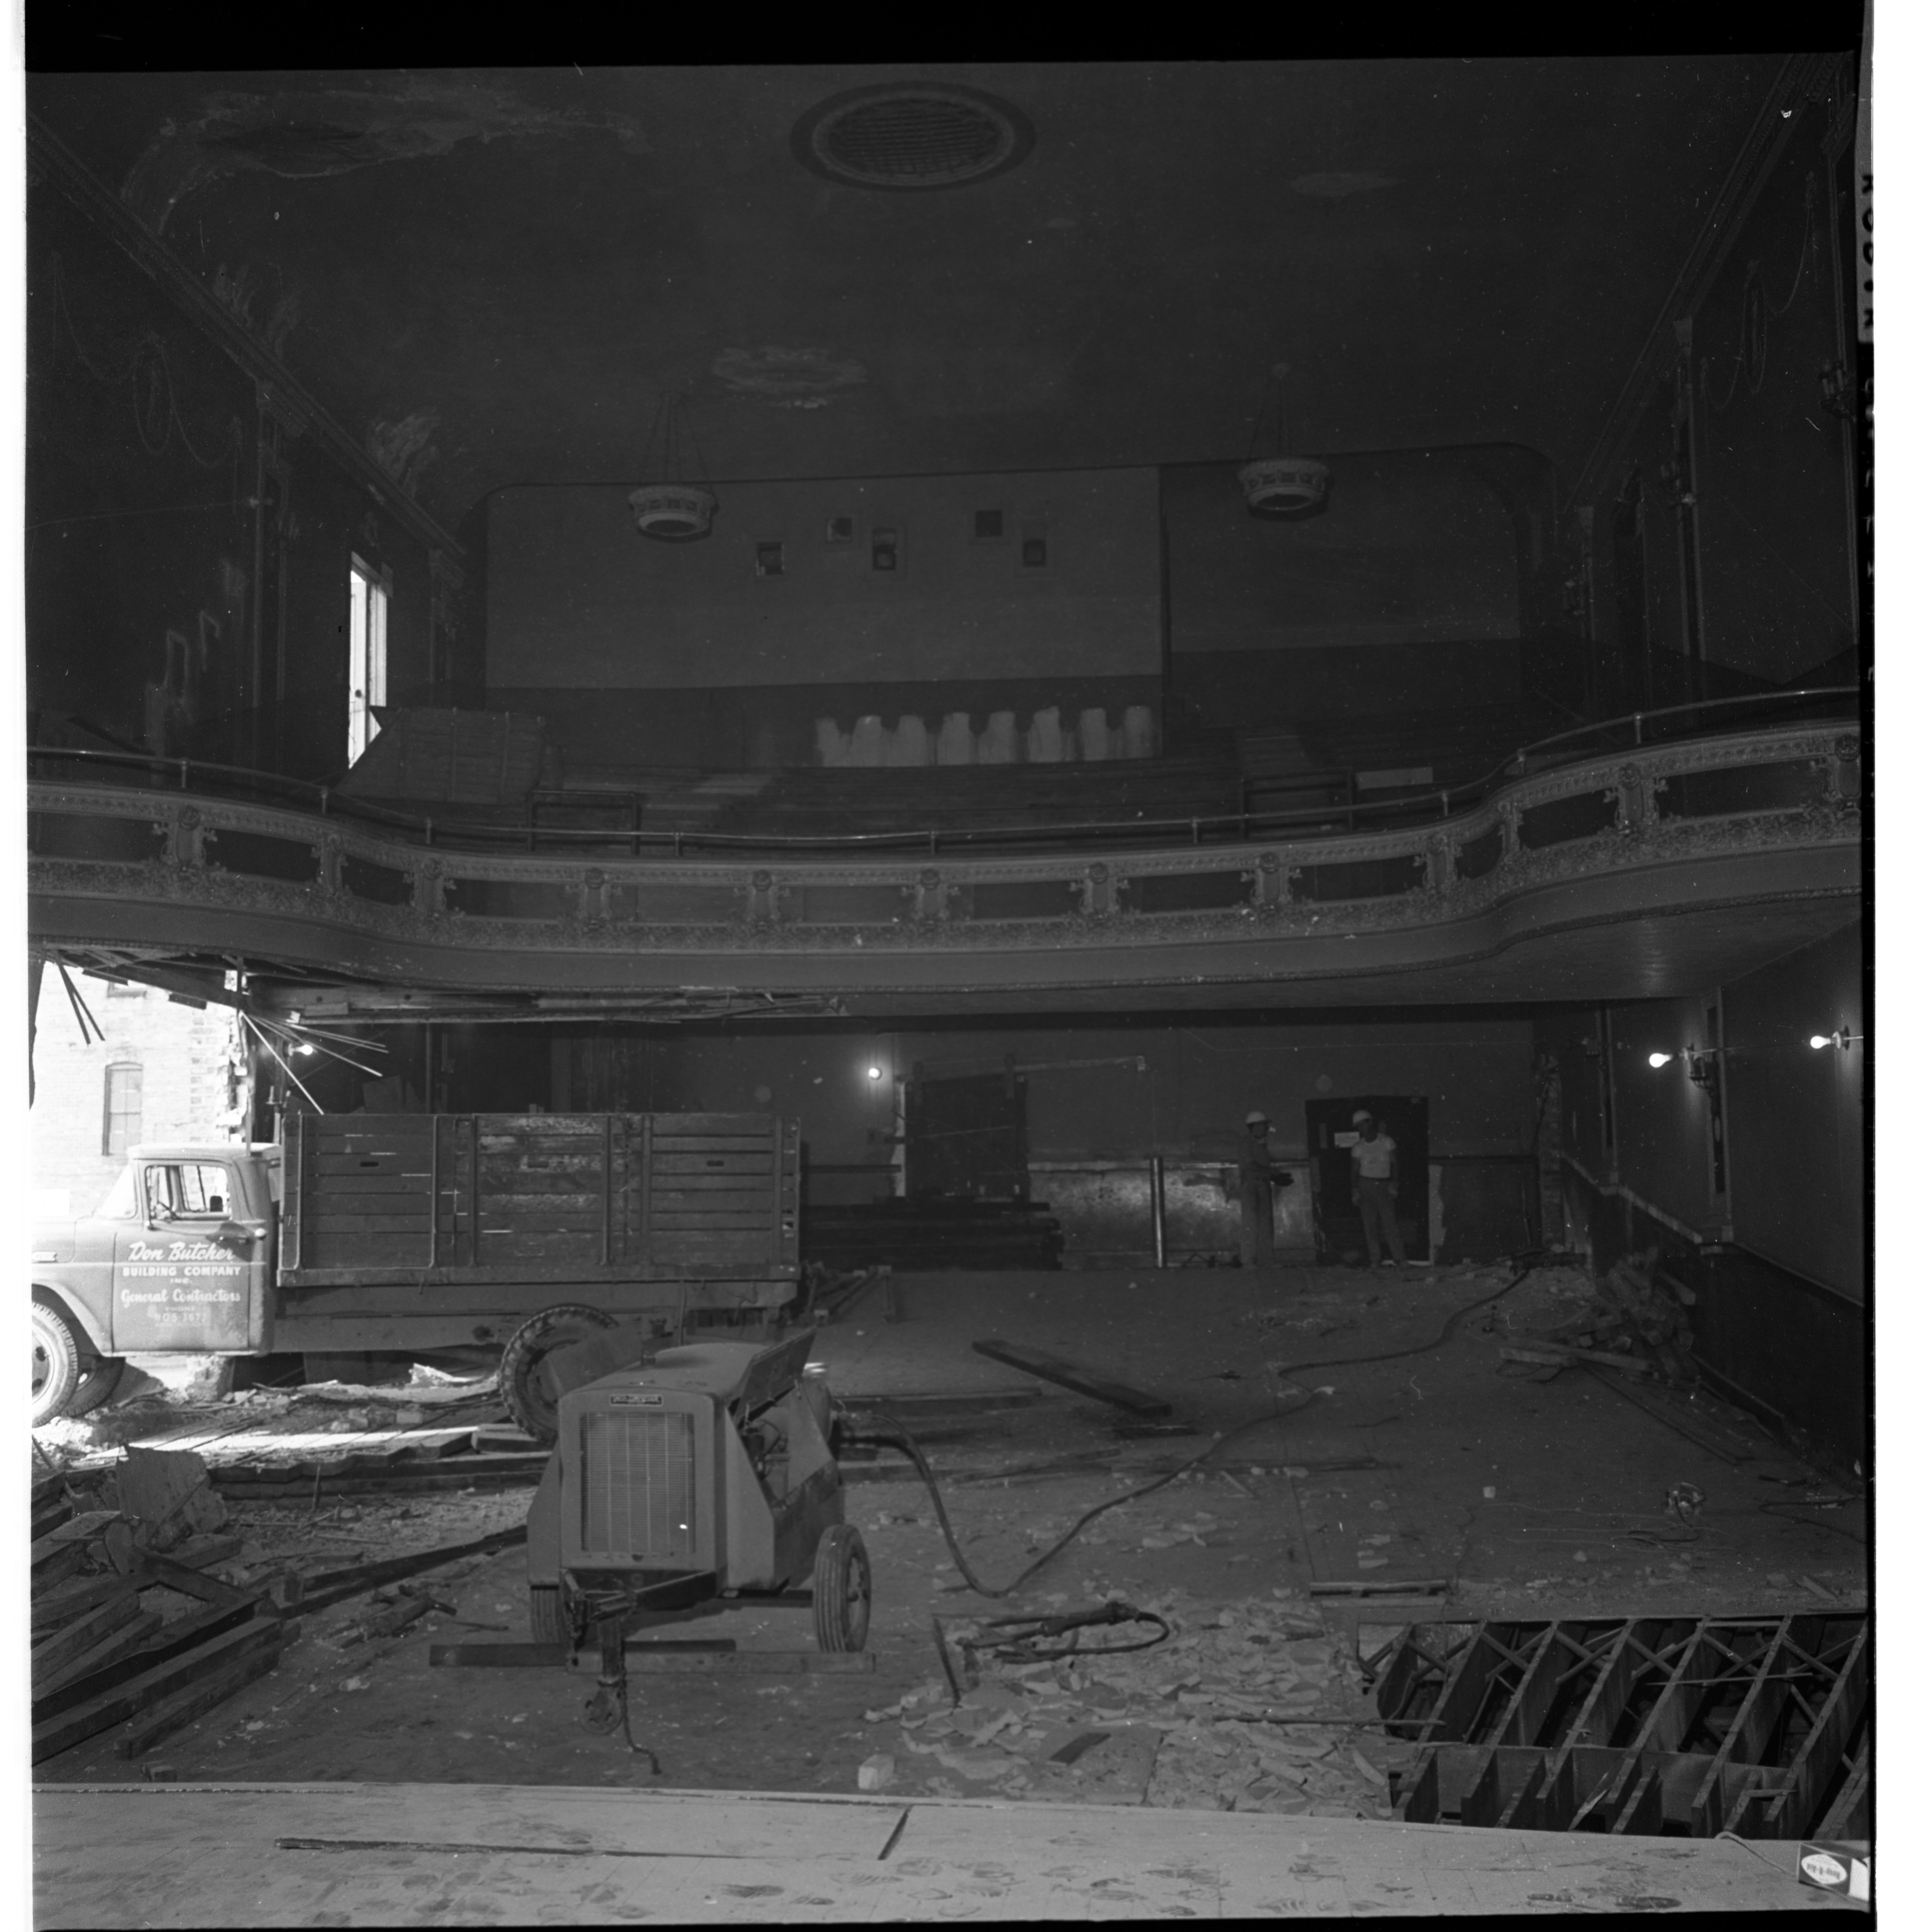 Demolition of the Wuerth Theater, September 1965 image